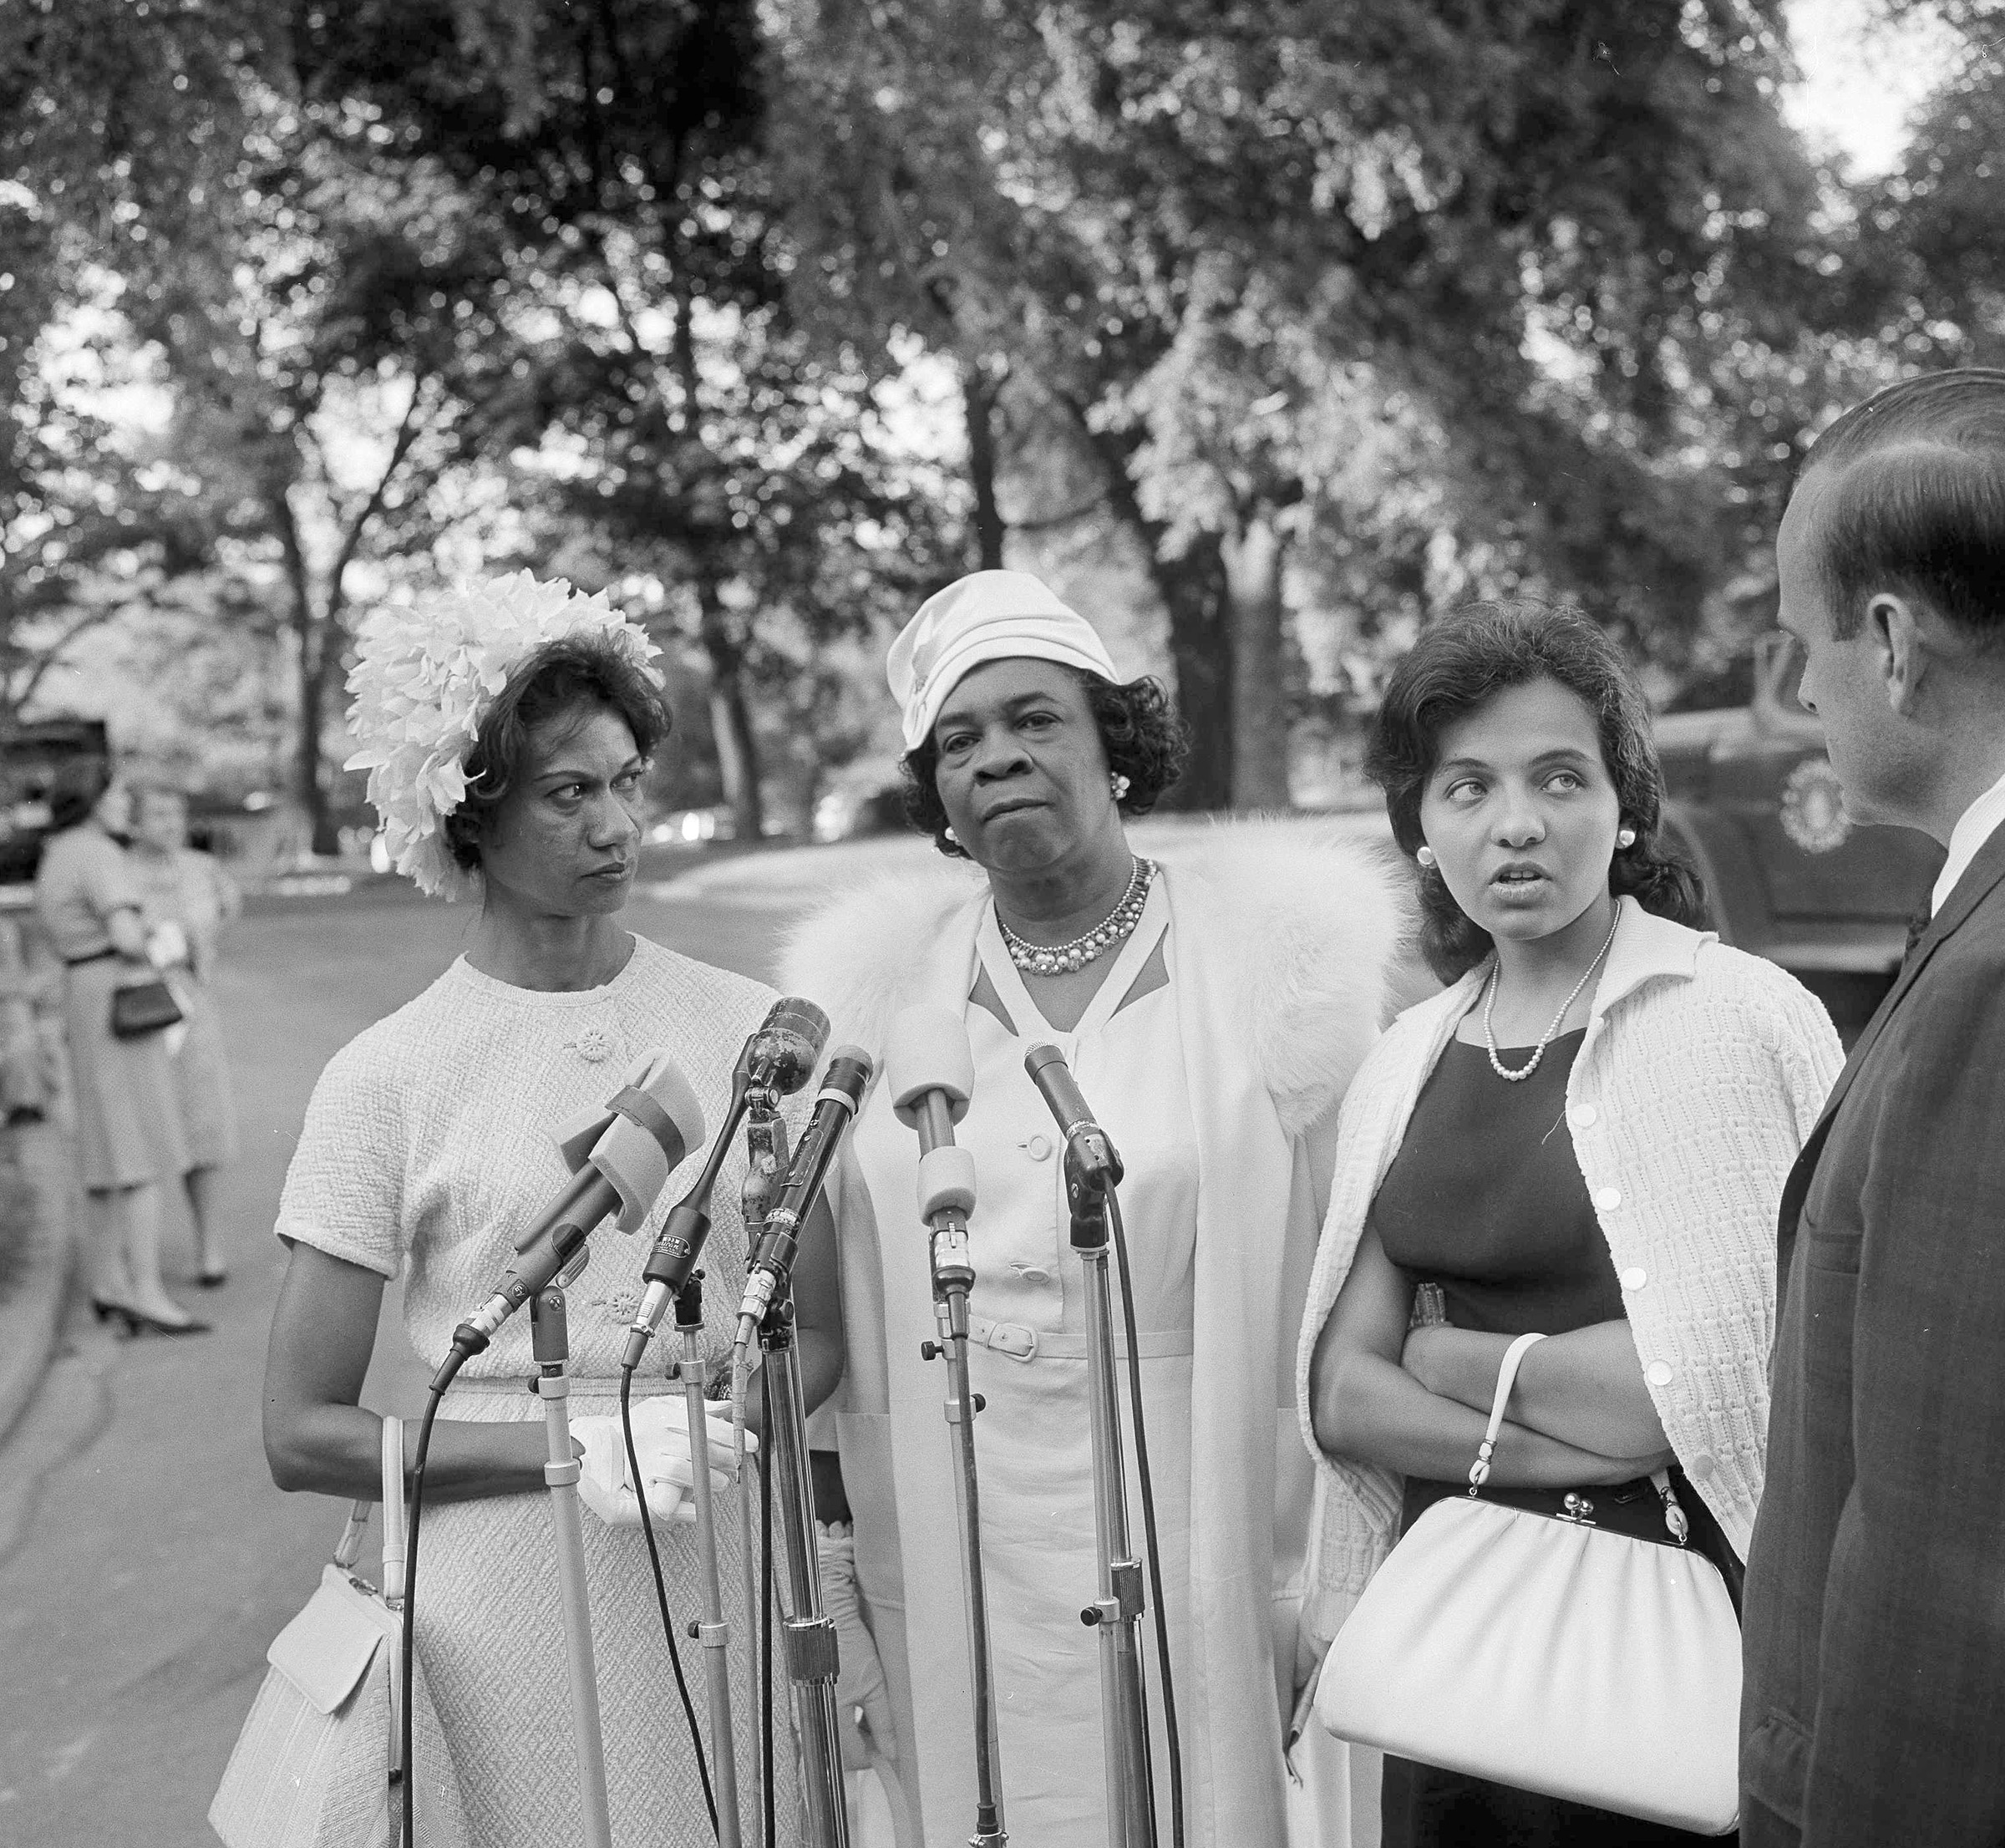 Gloria Richardson, left, a leader in the Cambridge, Md., integrationist's movement, Dr. Rosa L. Gragg of the National Association of Colored Woman's Clubs and Mrs. Diane Nash Bevel, right, representing the Southern Christian Leadership Committee, are interviewed as they leave the White House in Washington, D.C., July 9, 1963.